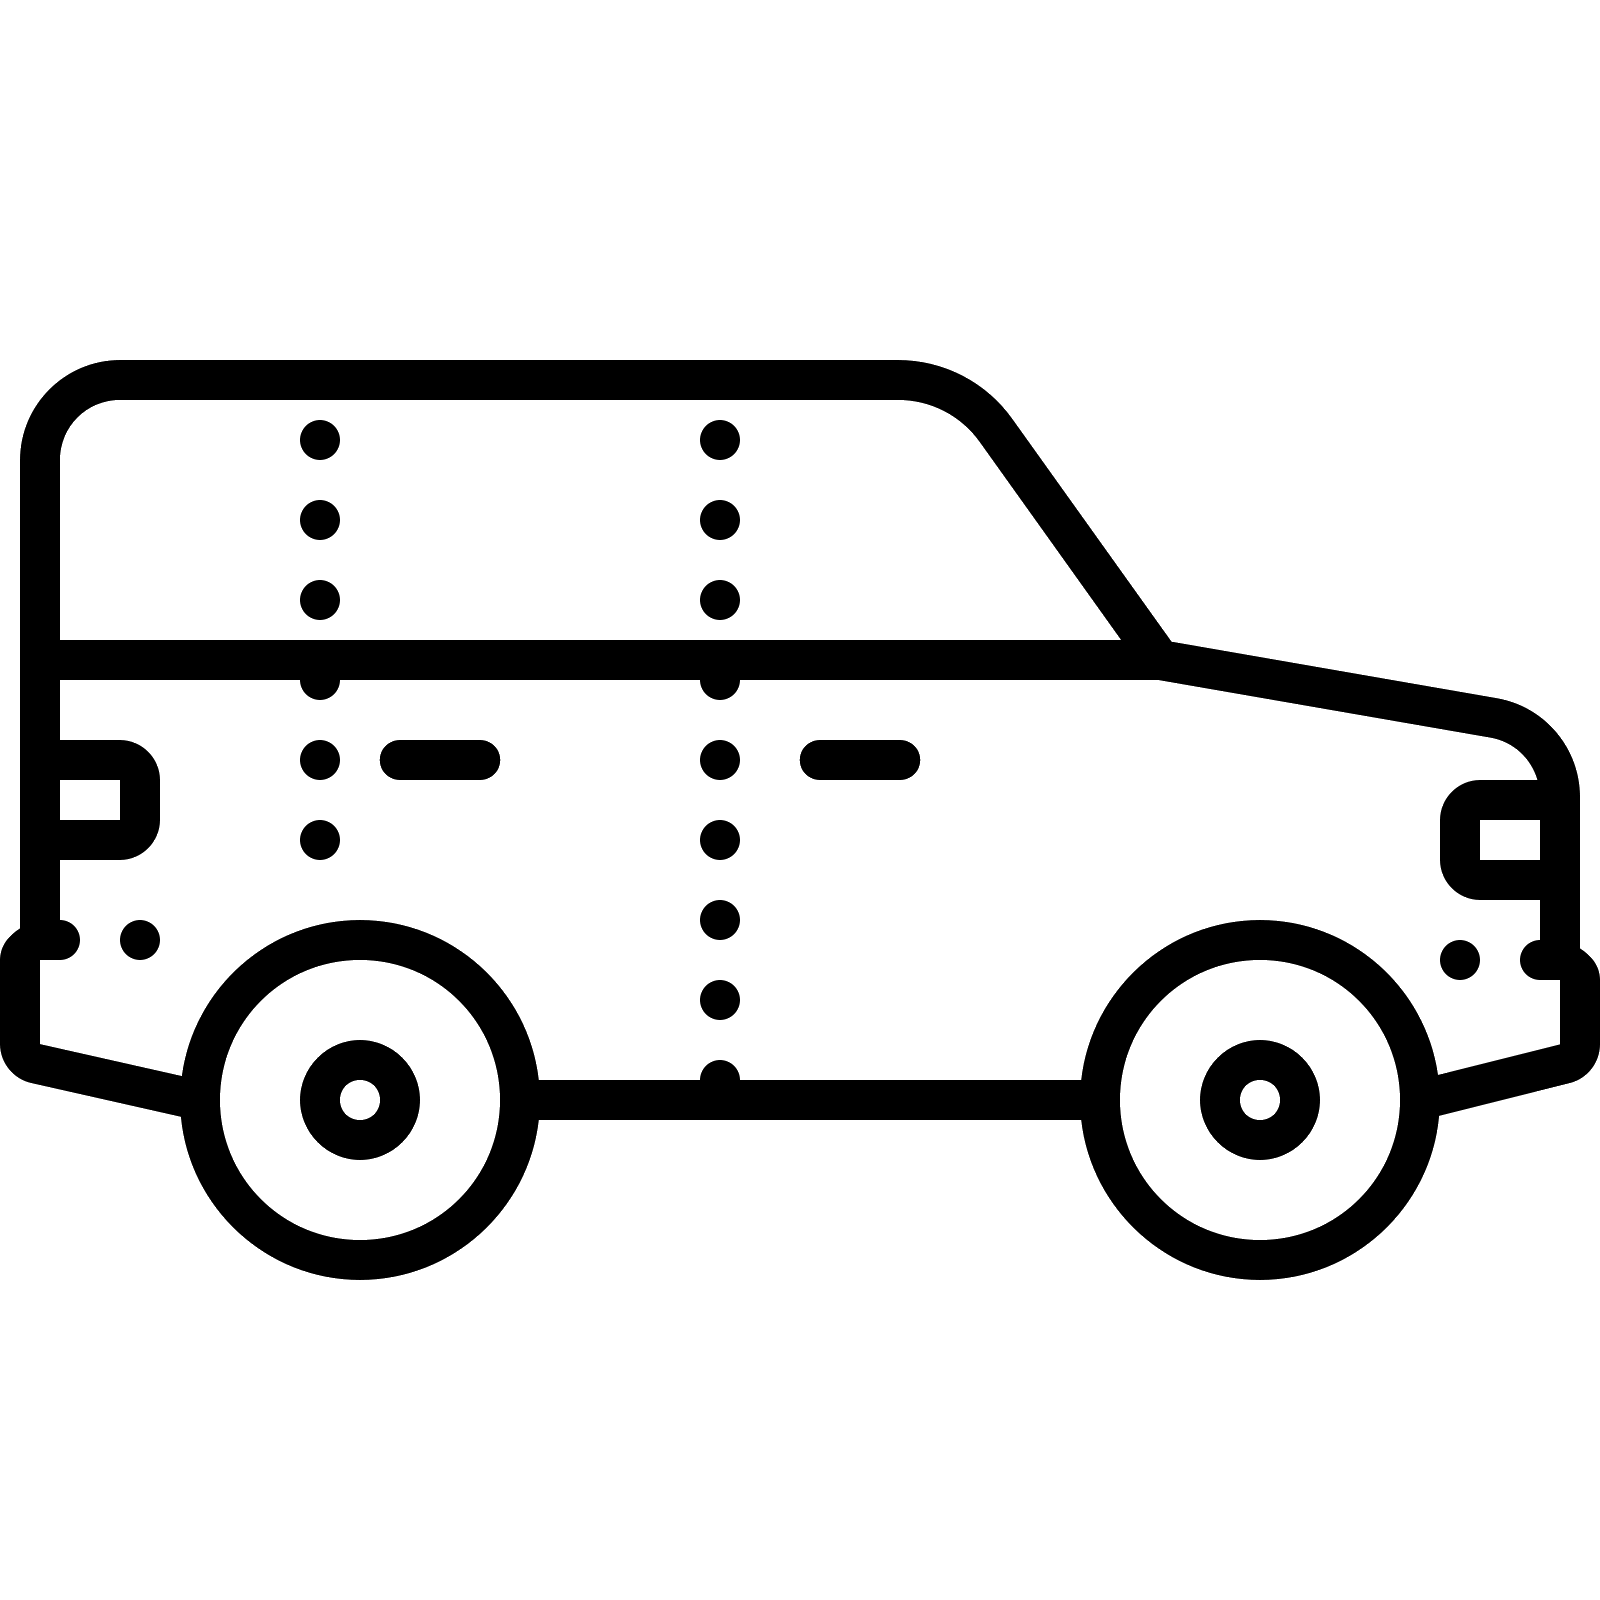 Jeep vector png. Icon px